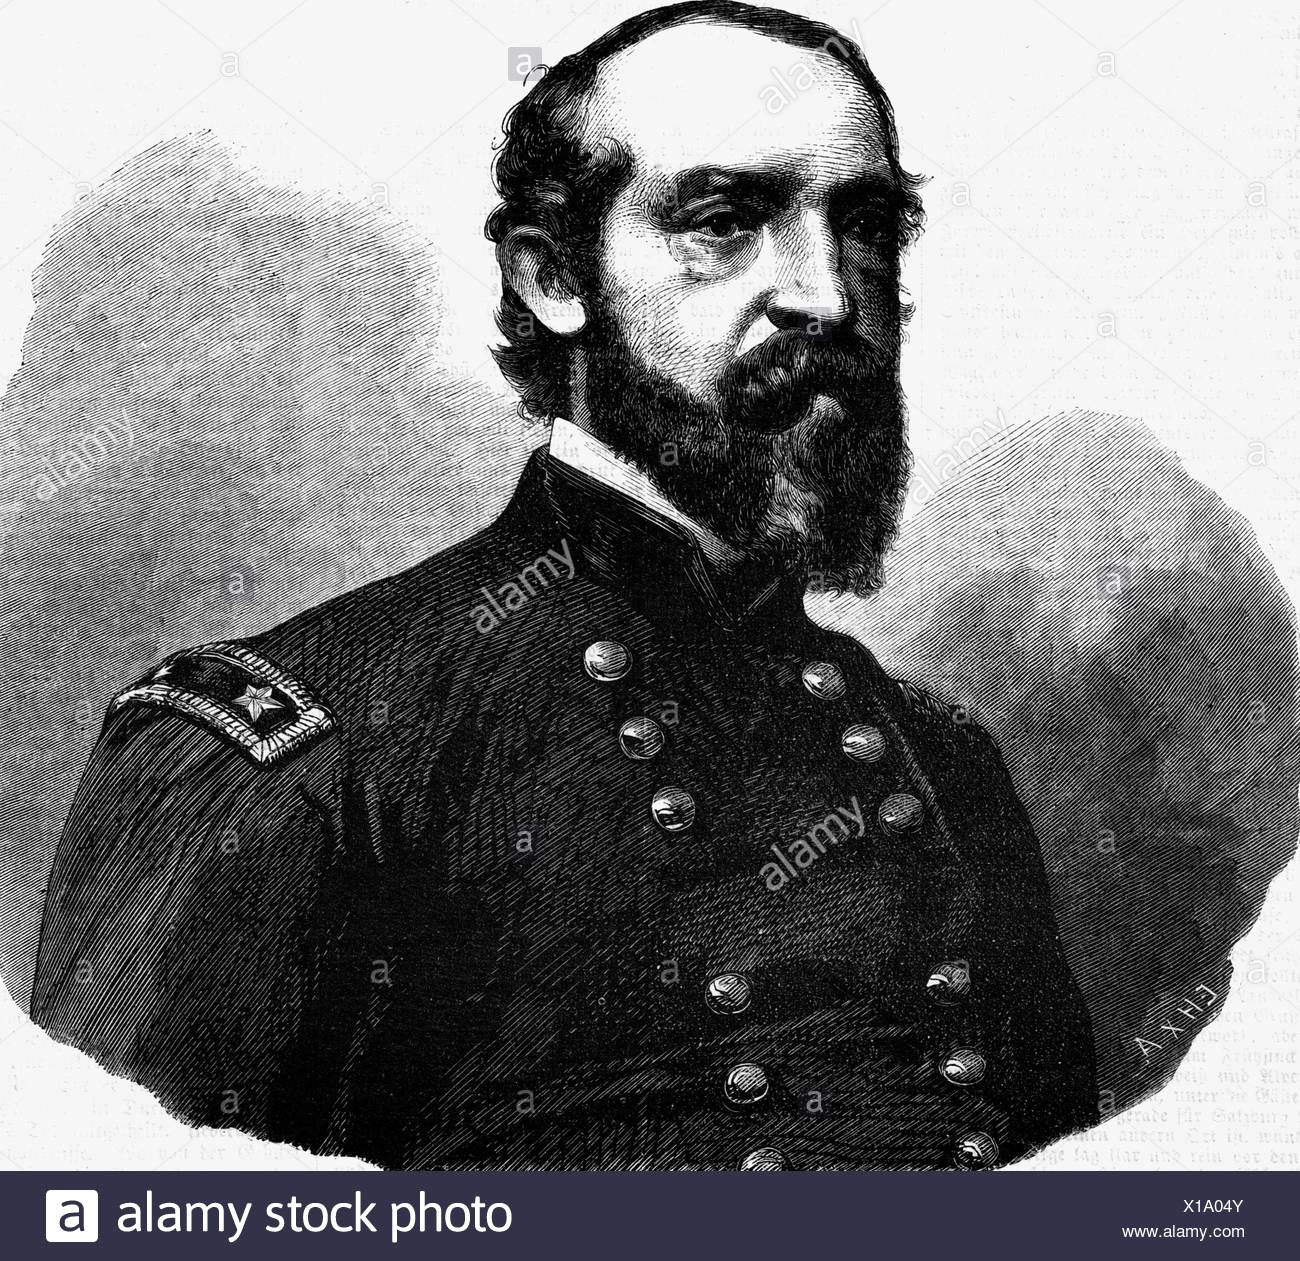 Meade, George G., 31.12.1815 - 6.11.1872, American General, Commanding Officer Army of the Potomac , Stock Photo